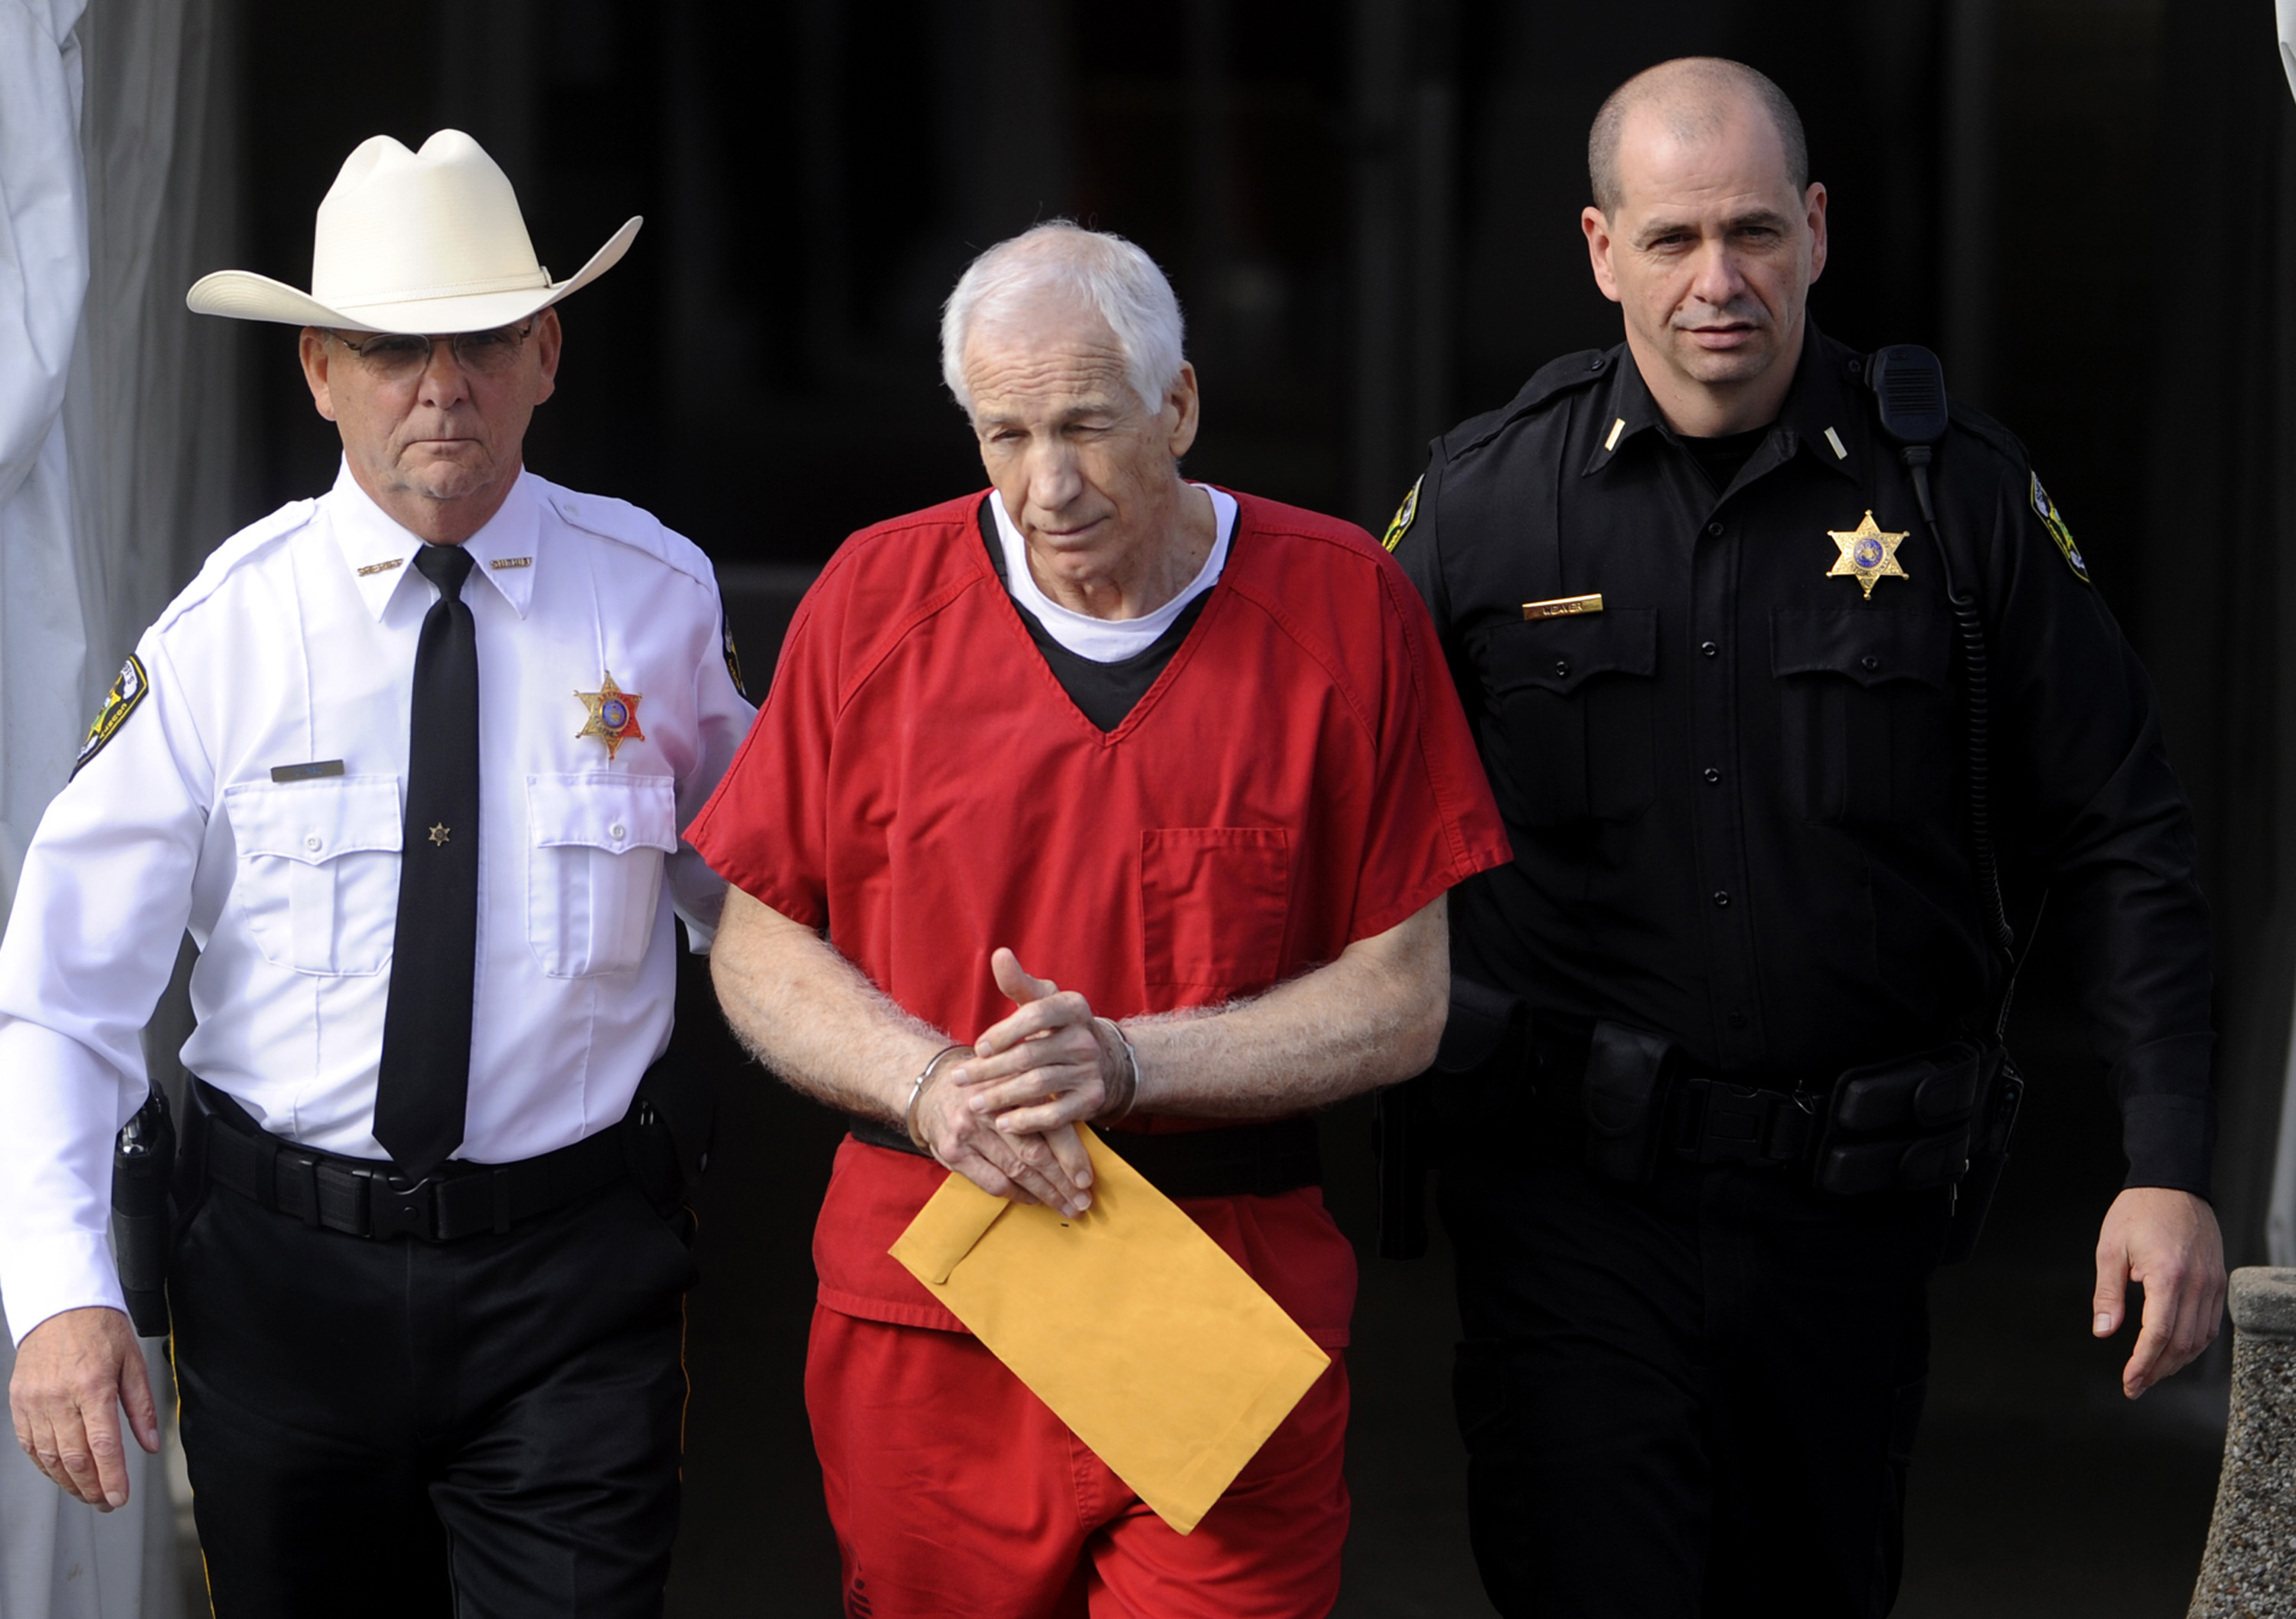 Jerry Sandusky, center, is escorted from his sentencing at the Centre County Courthouse in Bellefonte on Tuesday, October 9, 2012.